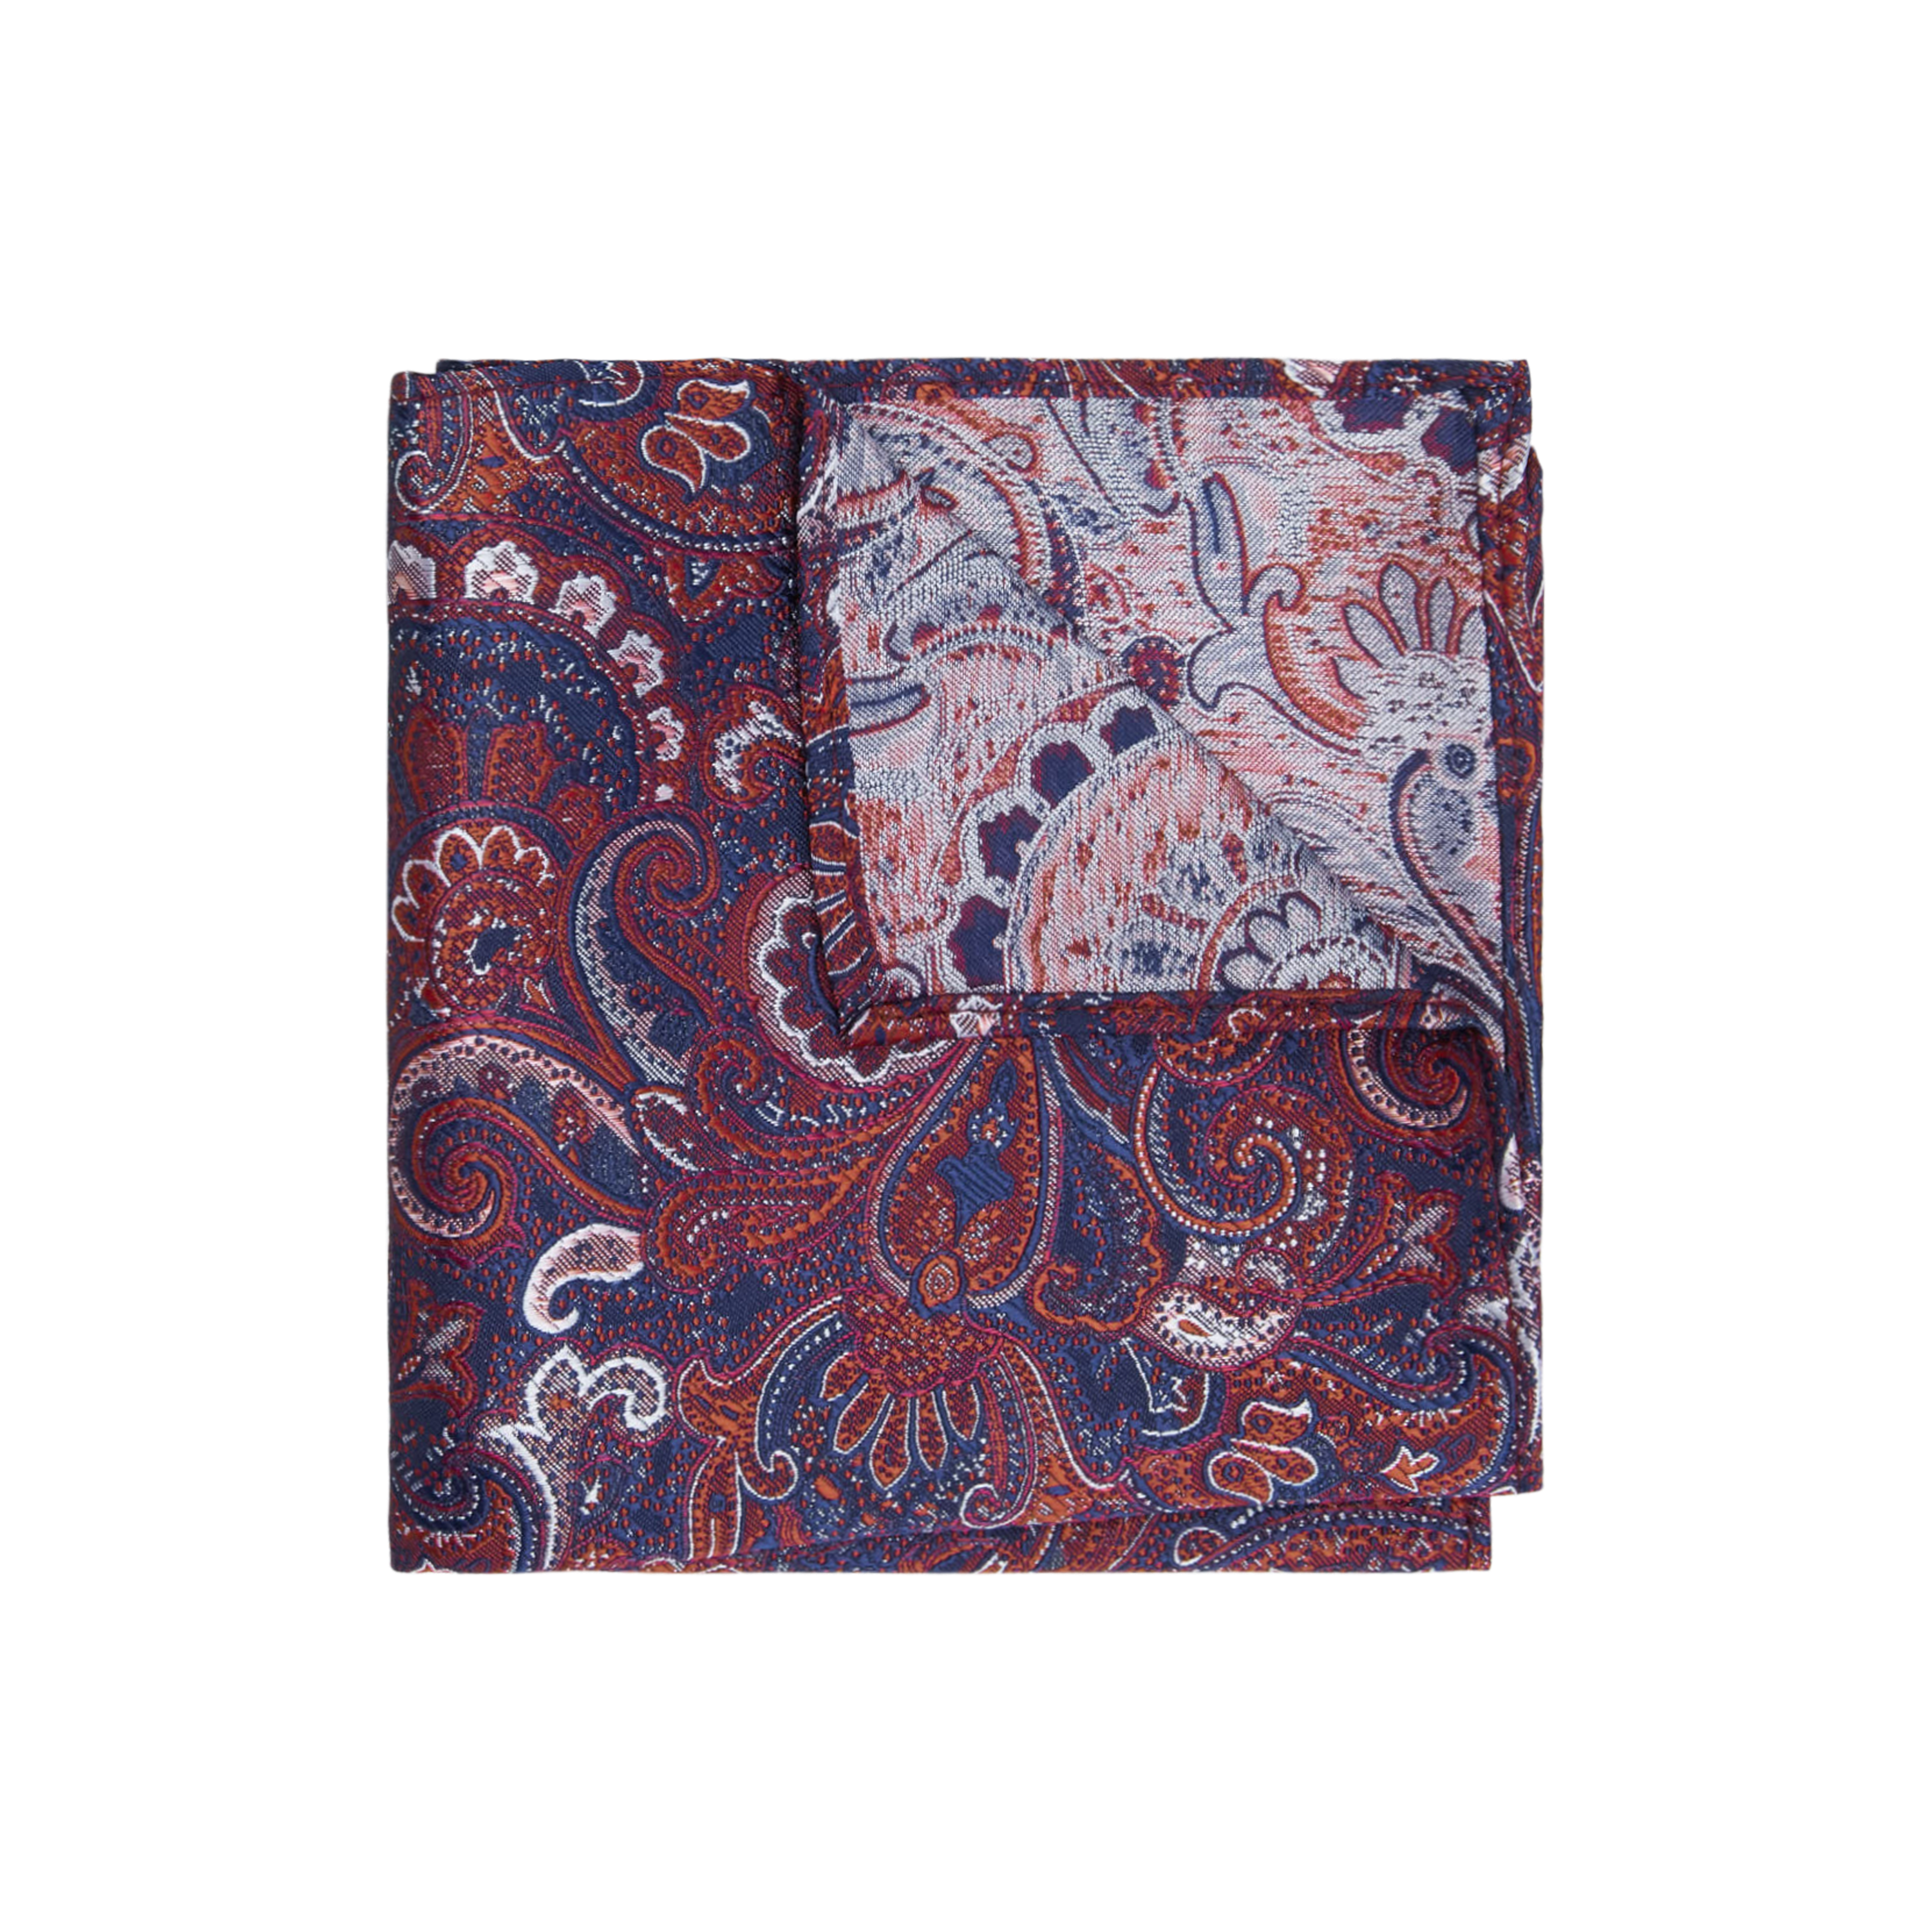 afa08477ef9b9 Red/Navy Paisley Large Paisley Pocket Square by yd. | Shop our Men's  Accessories